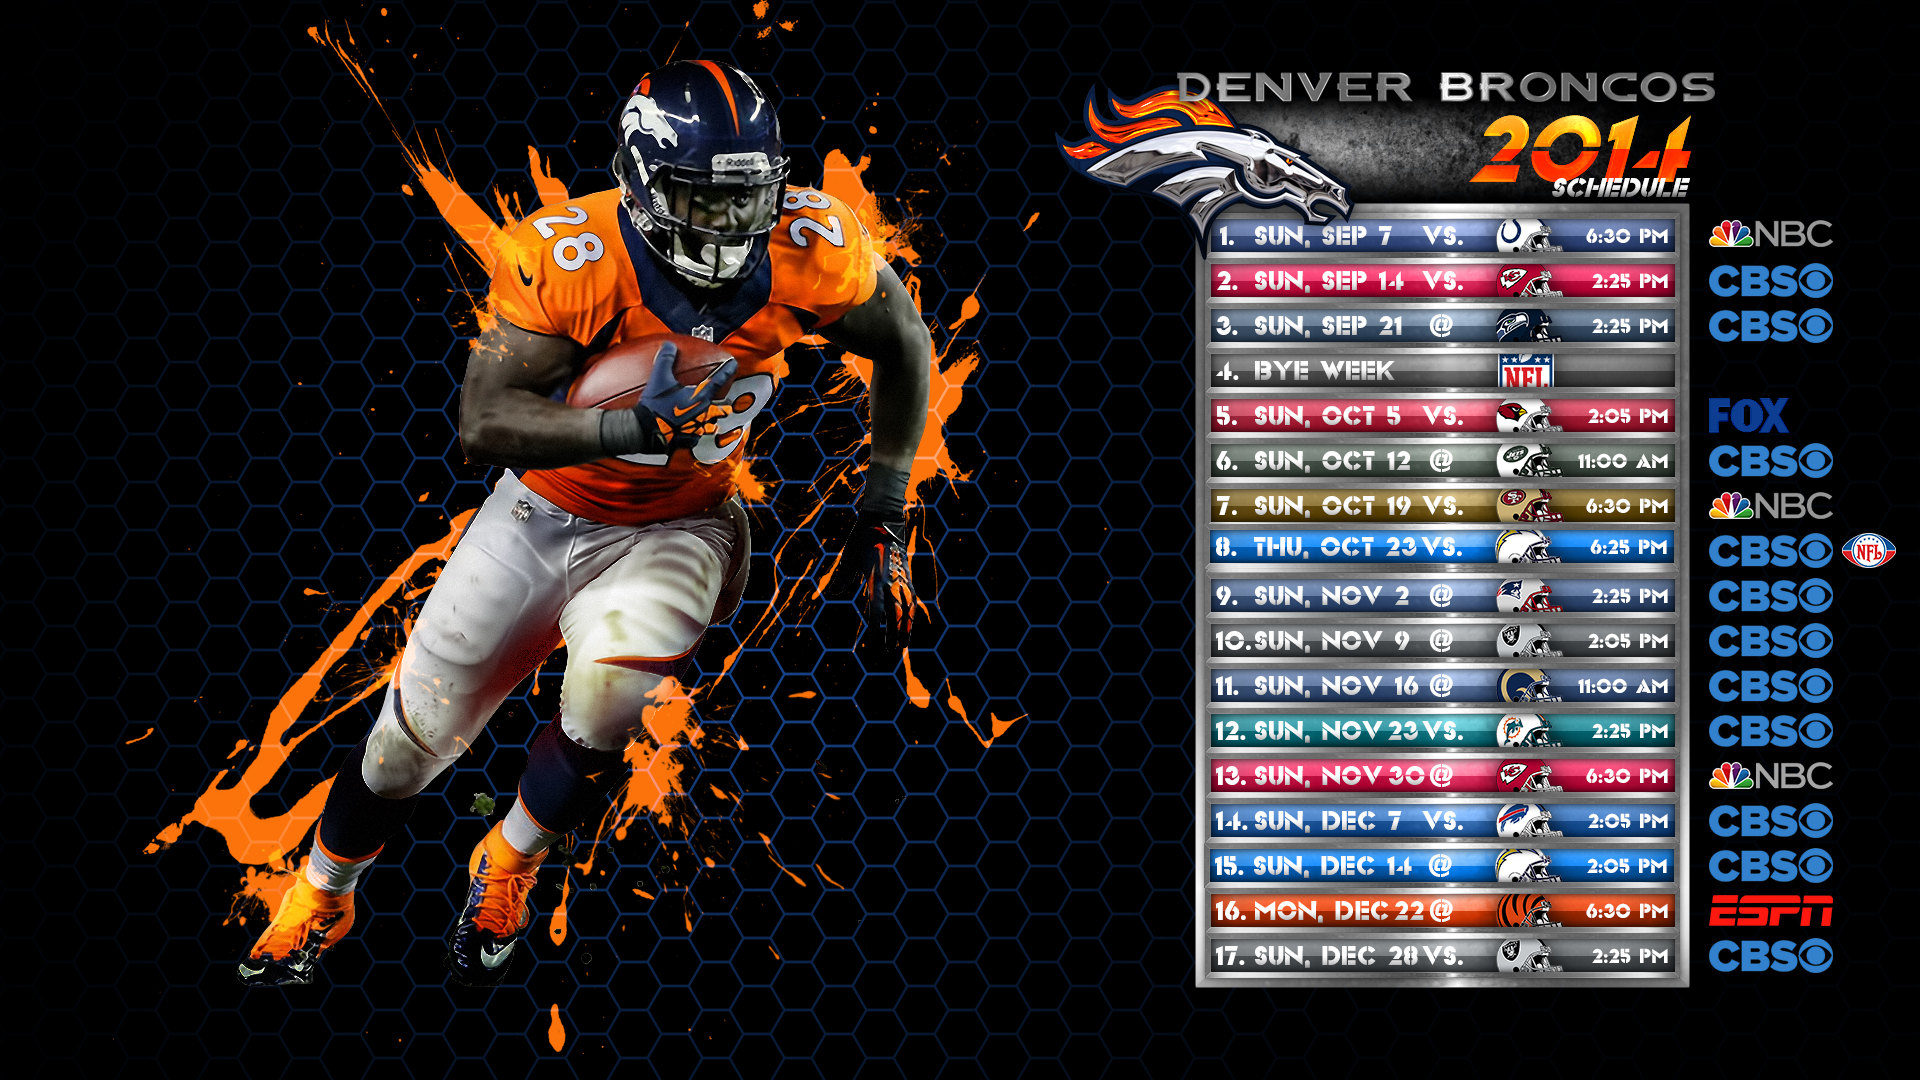 2014 Denver Broncos Schedule Wallpaper by DenverSportsWalls on